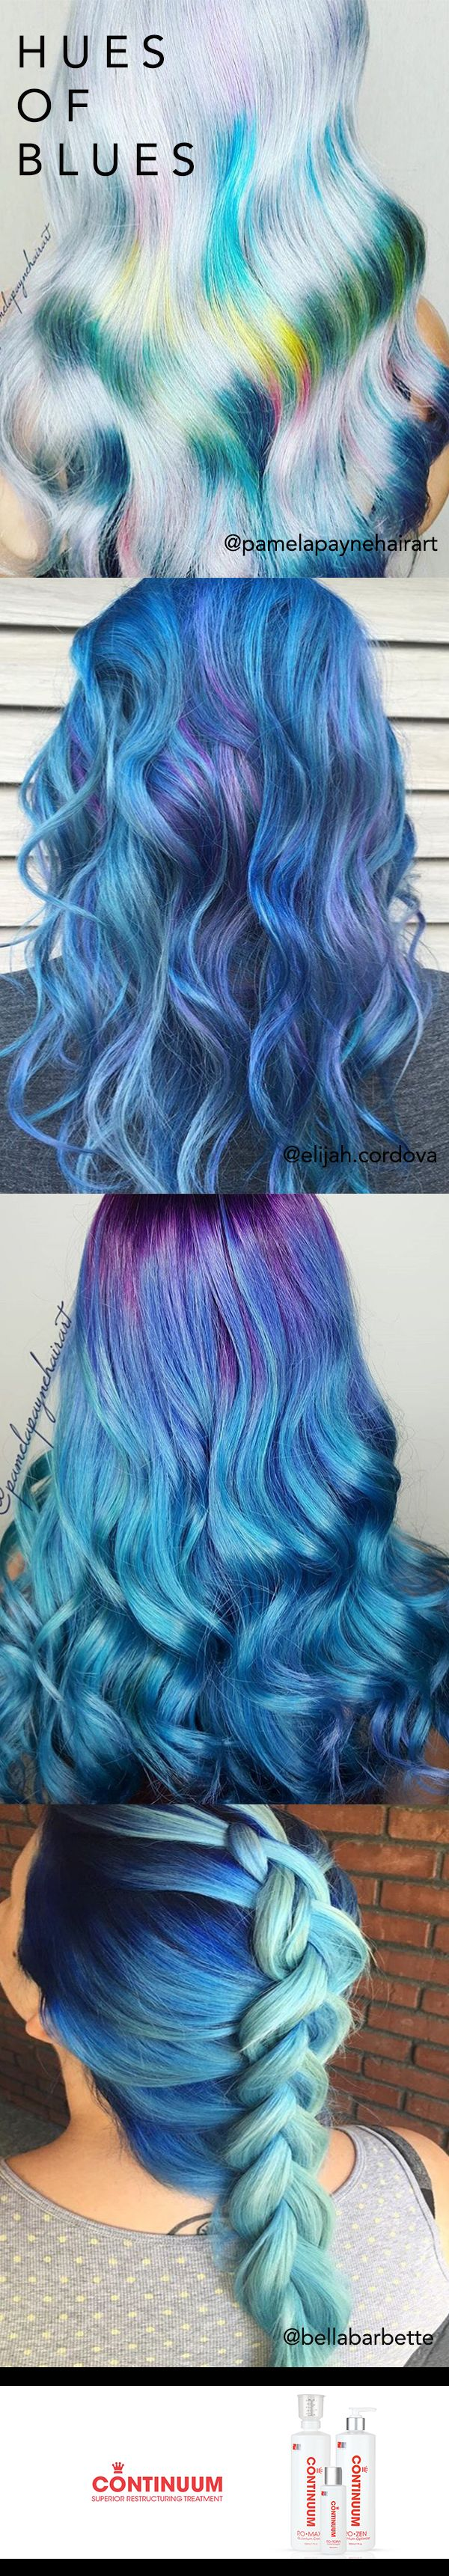 I WANT TO DO SOMETHING LIKE THE THIRD ONE but with some blonde on the bottom too